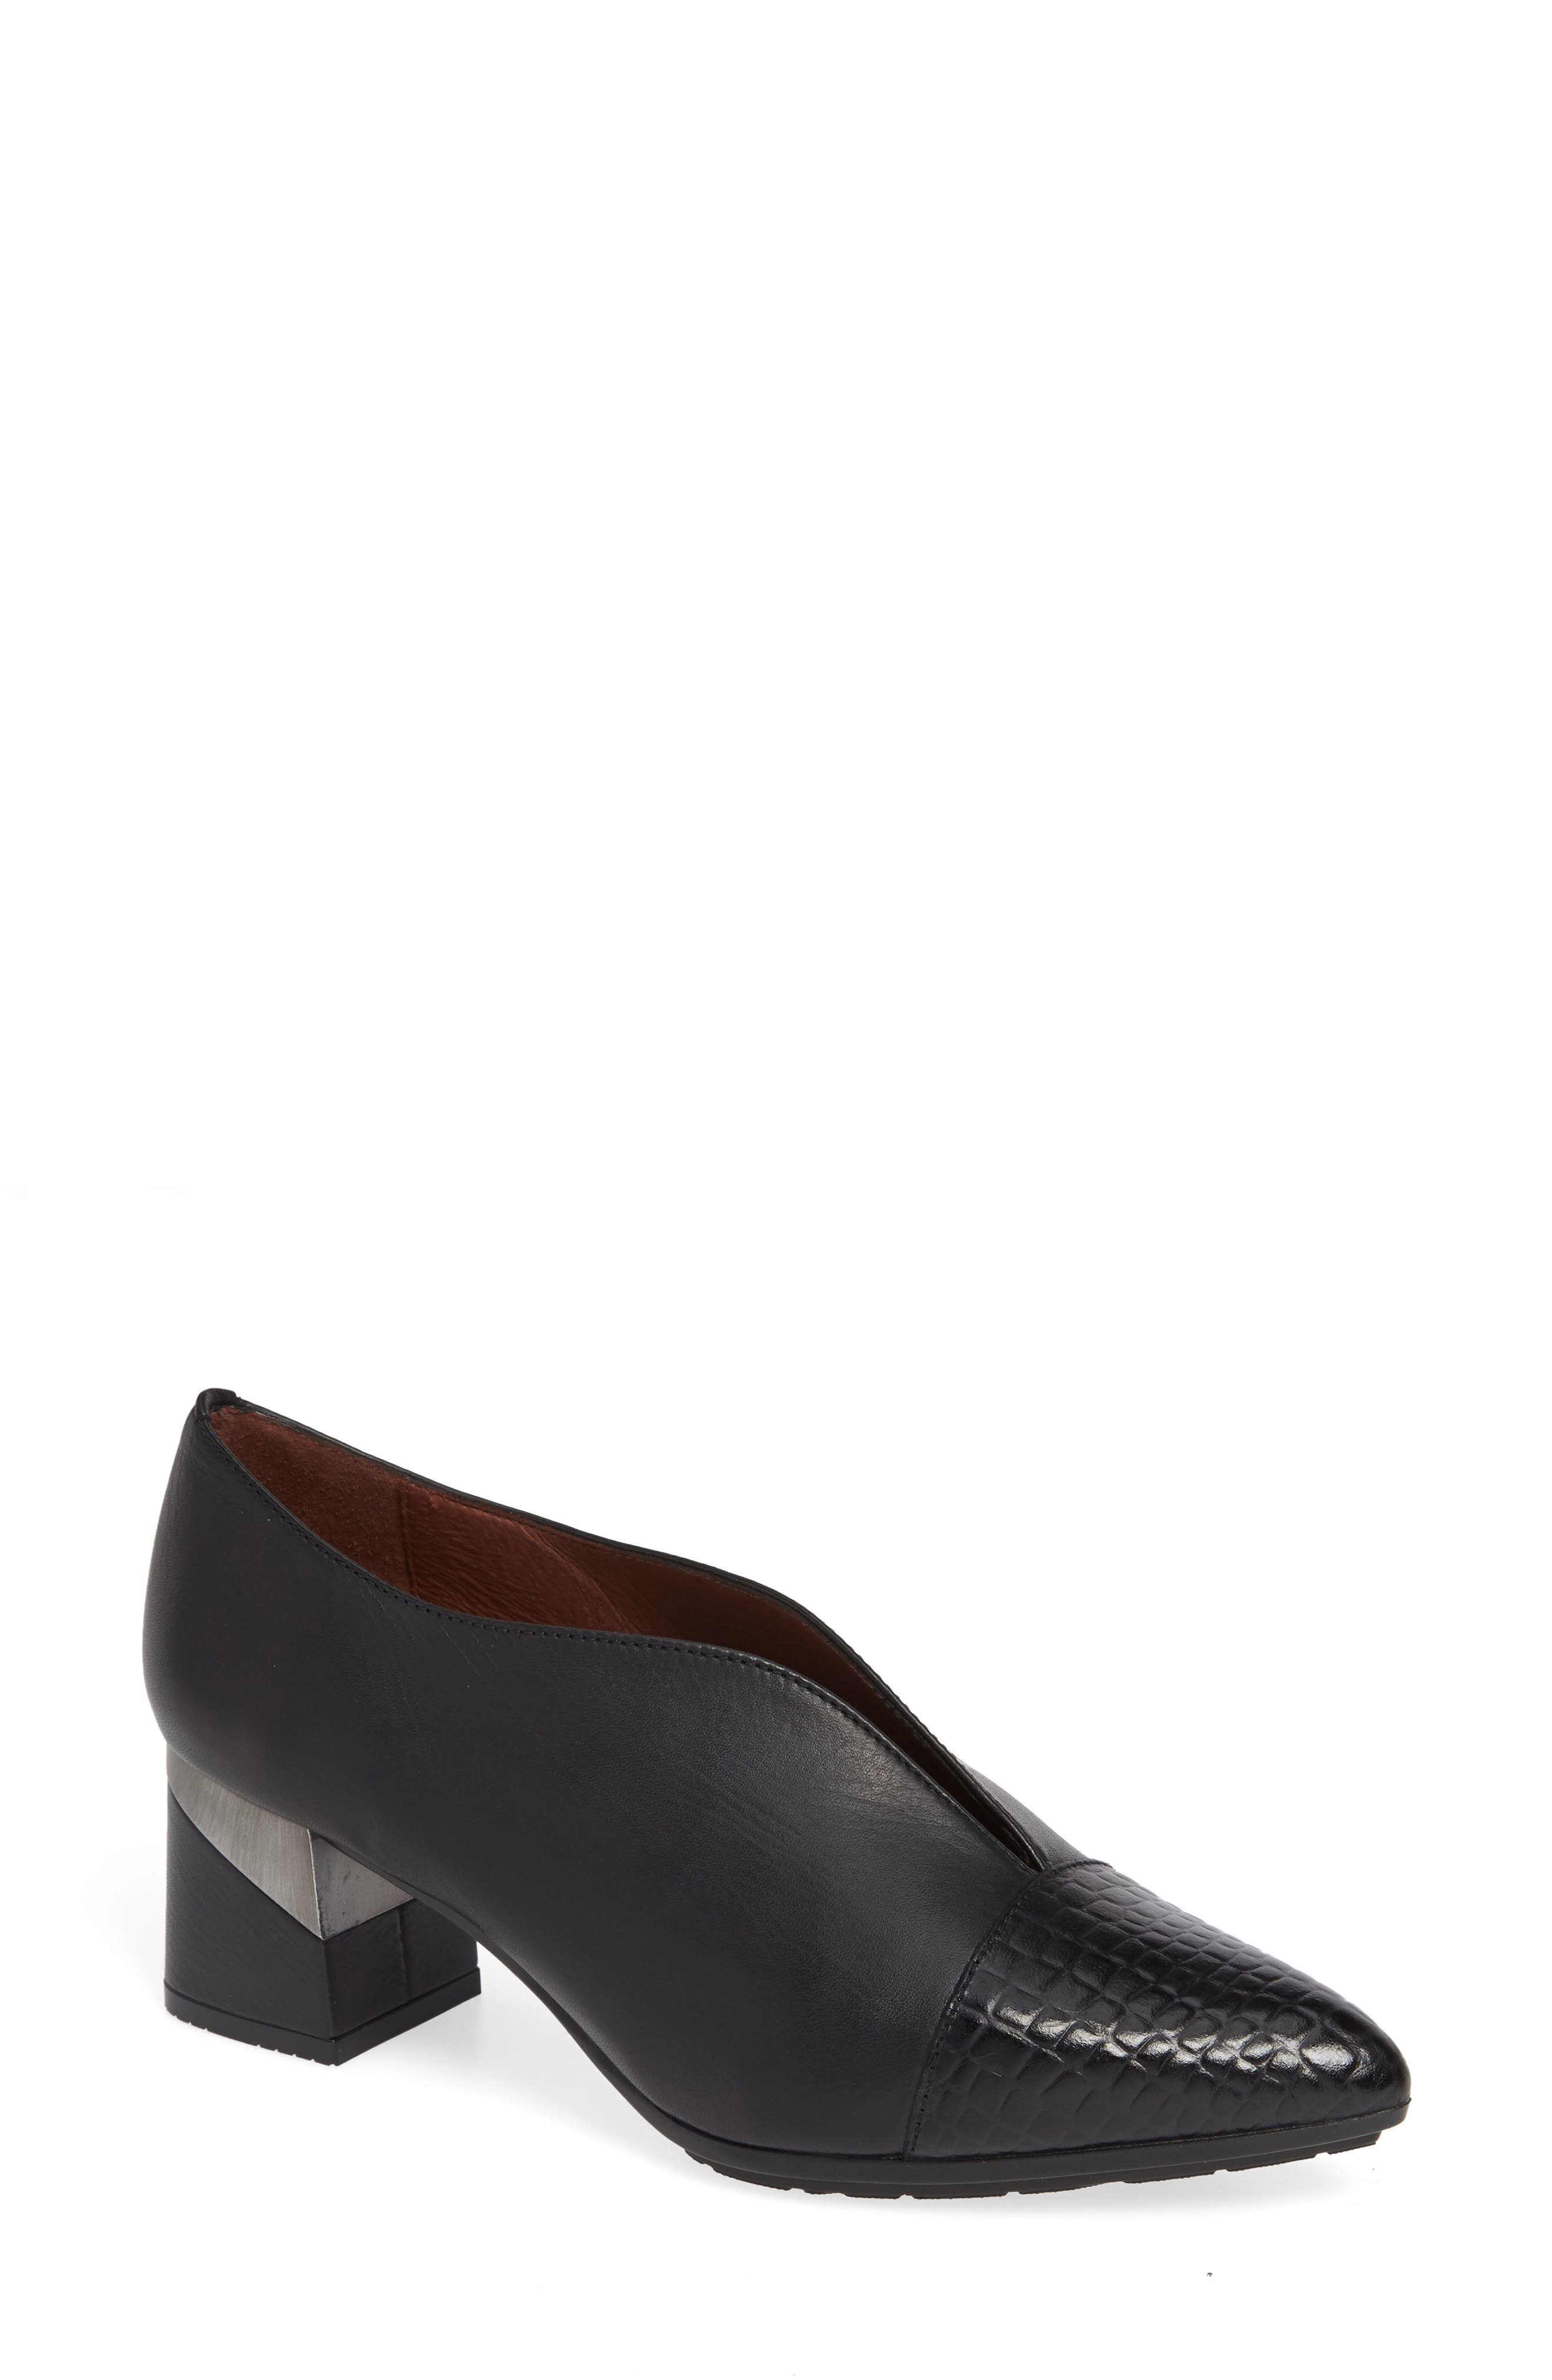 193b1c18bb551 Women's Comfort Shoes: Sale | Nordstrom